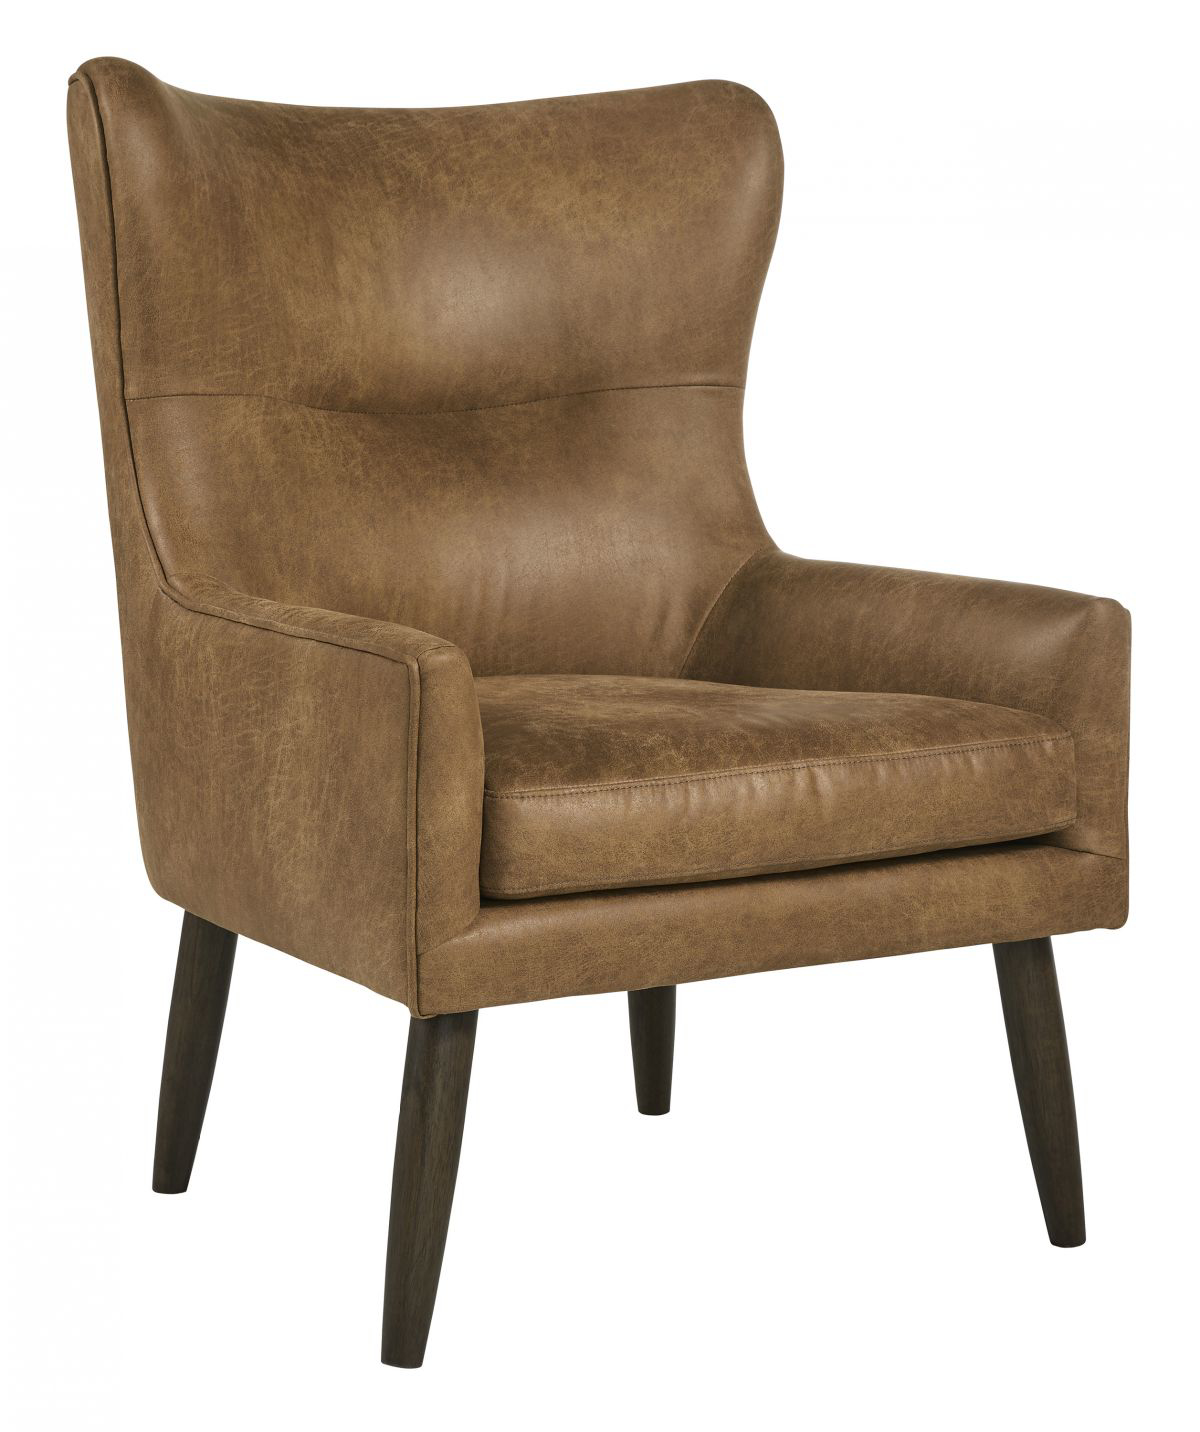 Picture of Brentwell Chair